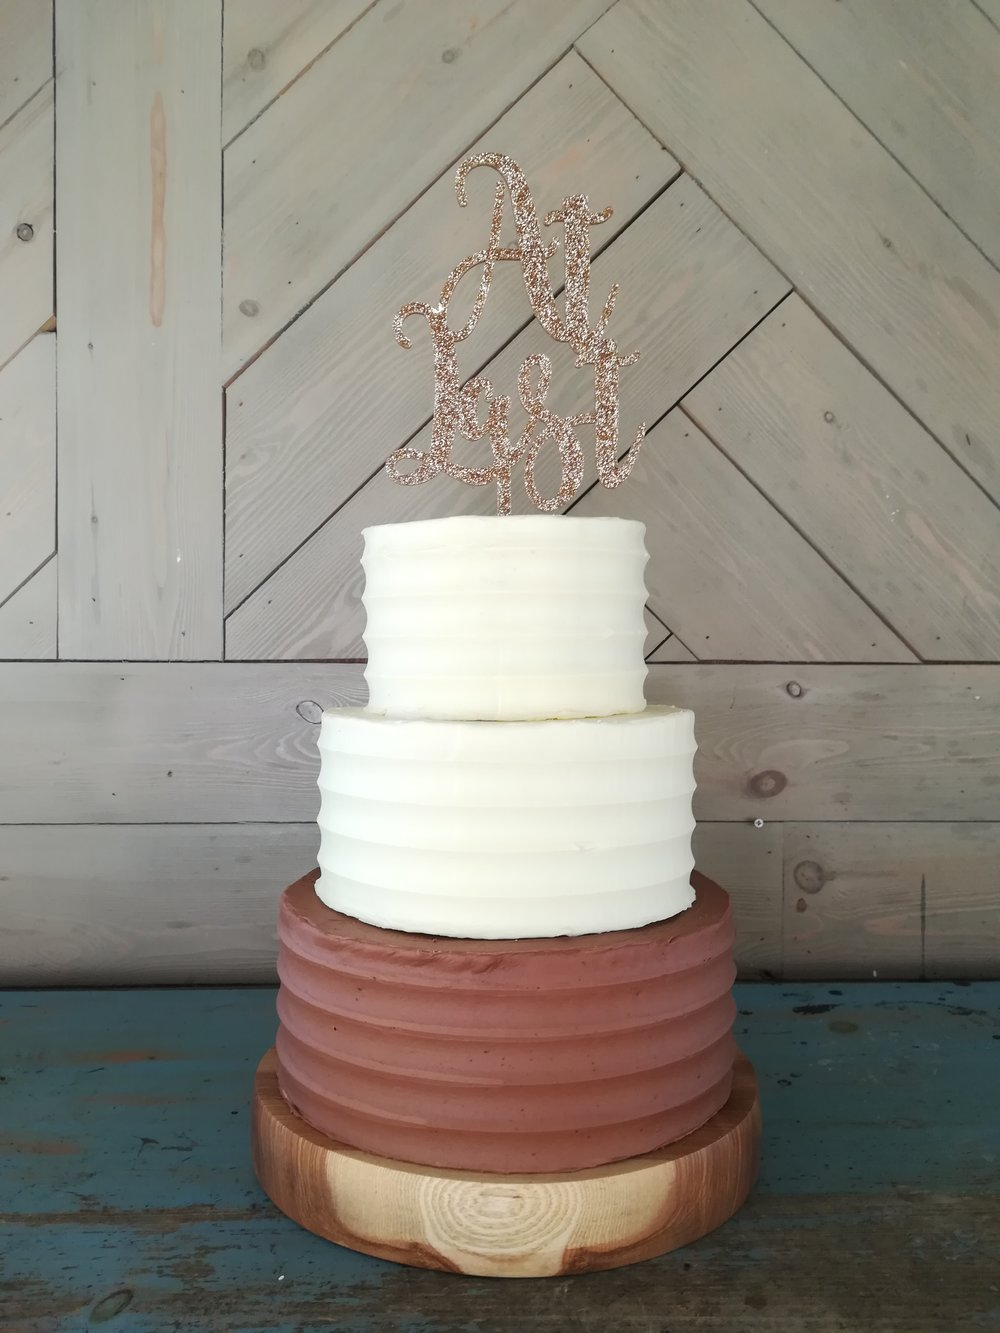 Chocolate buttercream cake, minimal and neat!